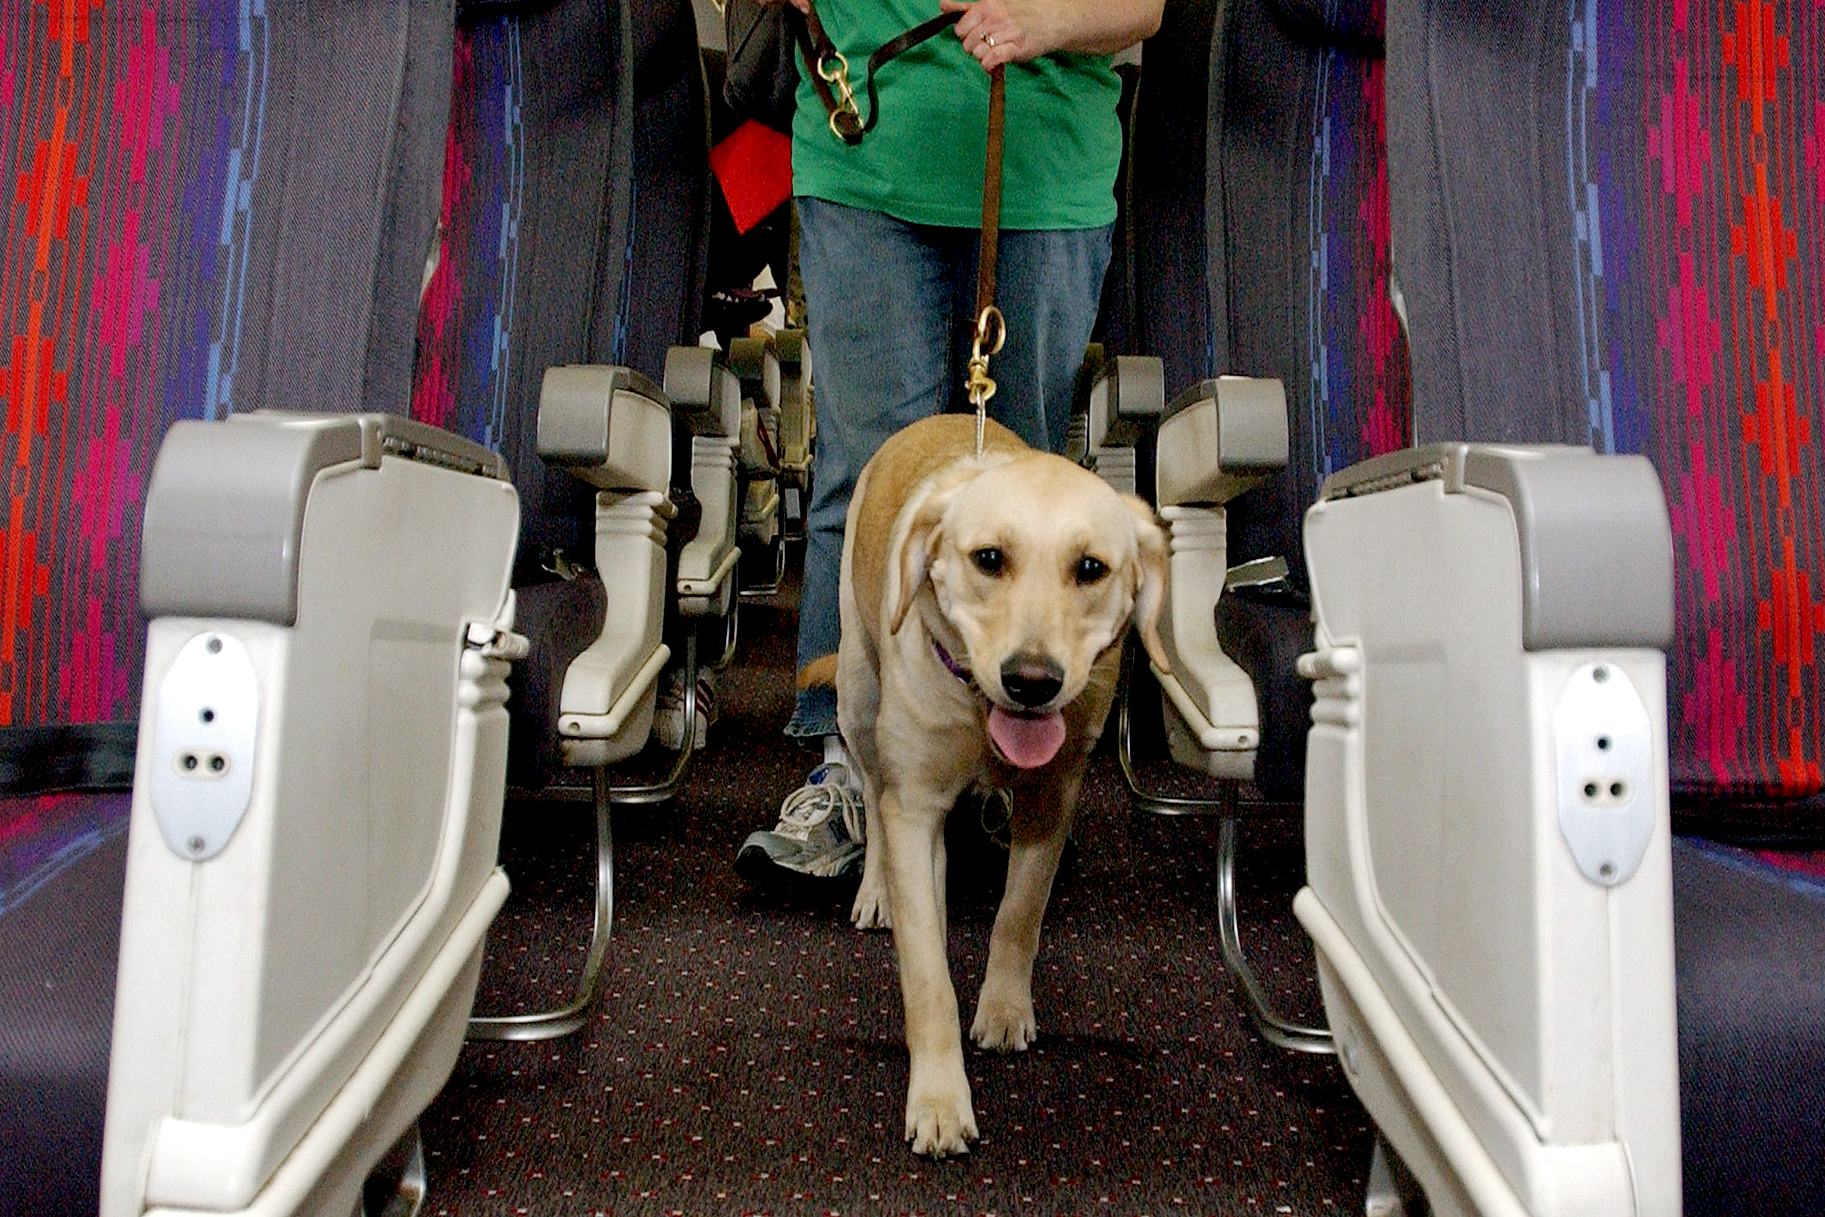 Which Airlines Have the Best Pet Policies?